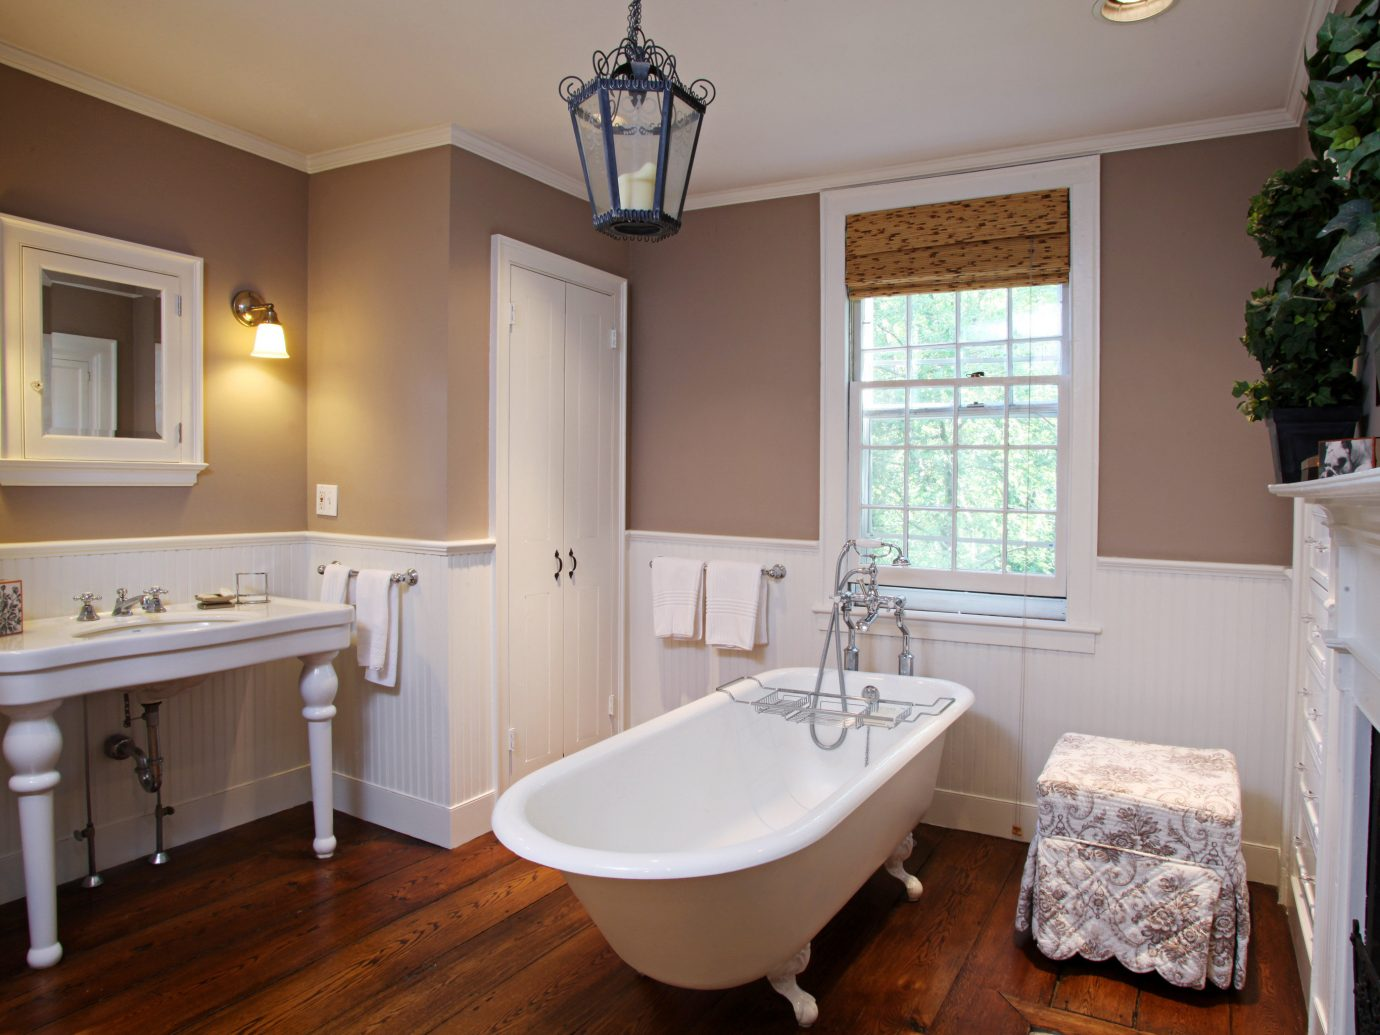 Bath Country Elegant Inn indoor wall floor window bathroom room property ceiling home estate cottage cuisine classique real estate hardwood interior design Kitchen farmhouse wood tub